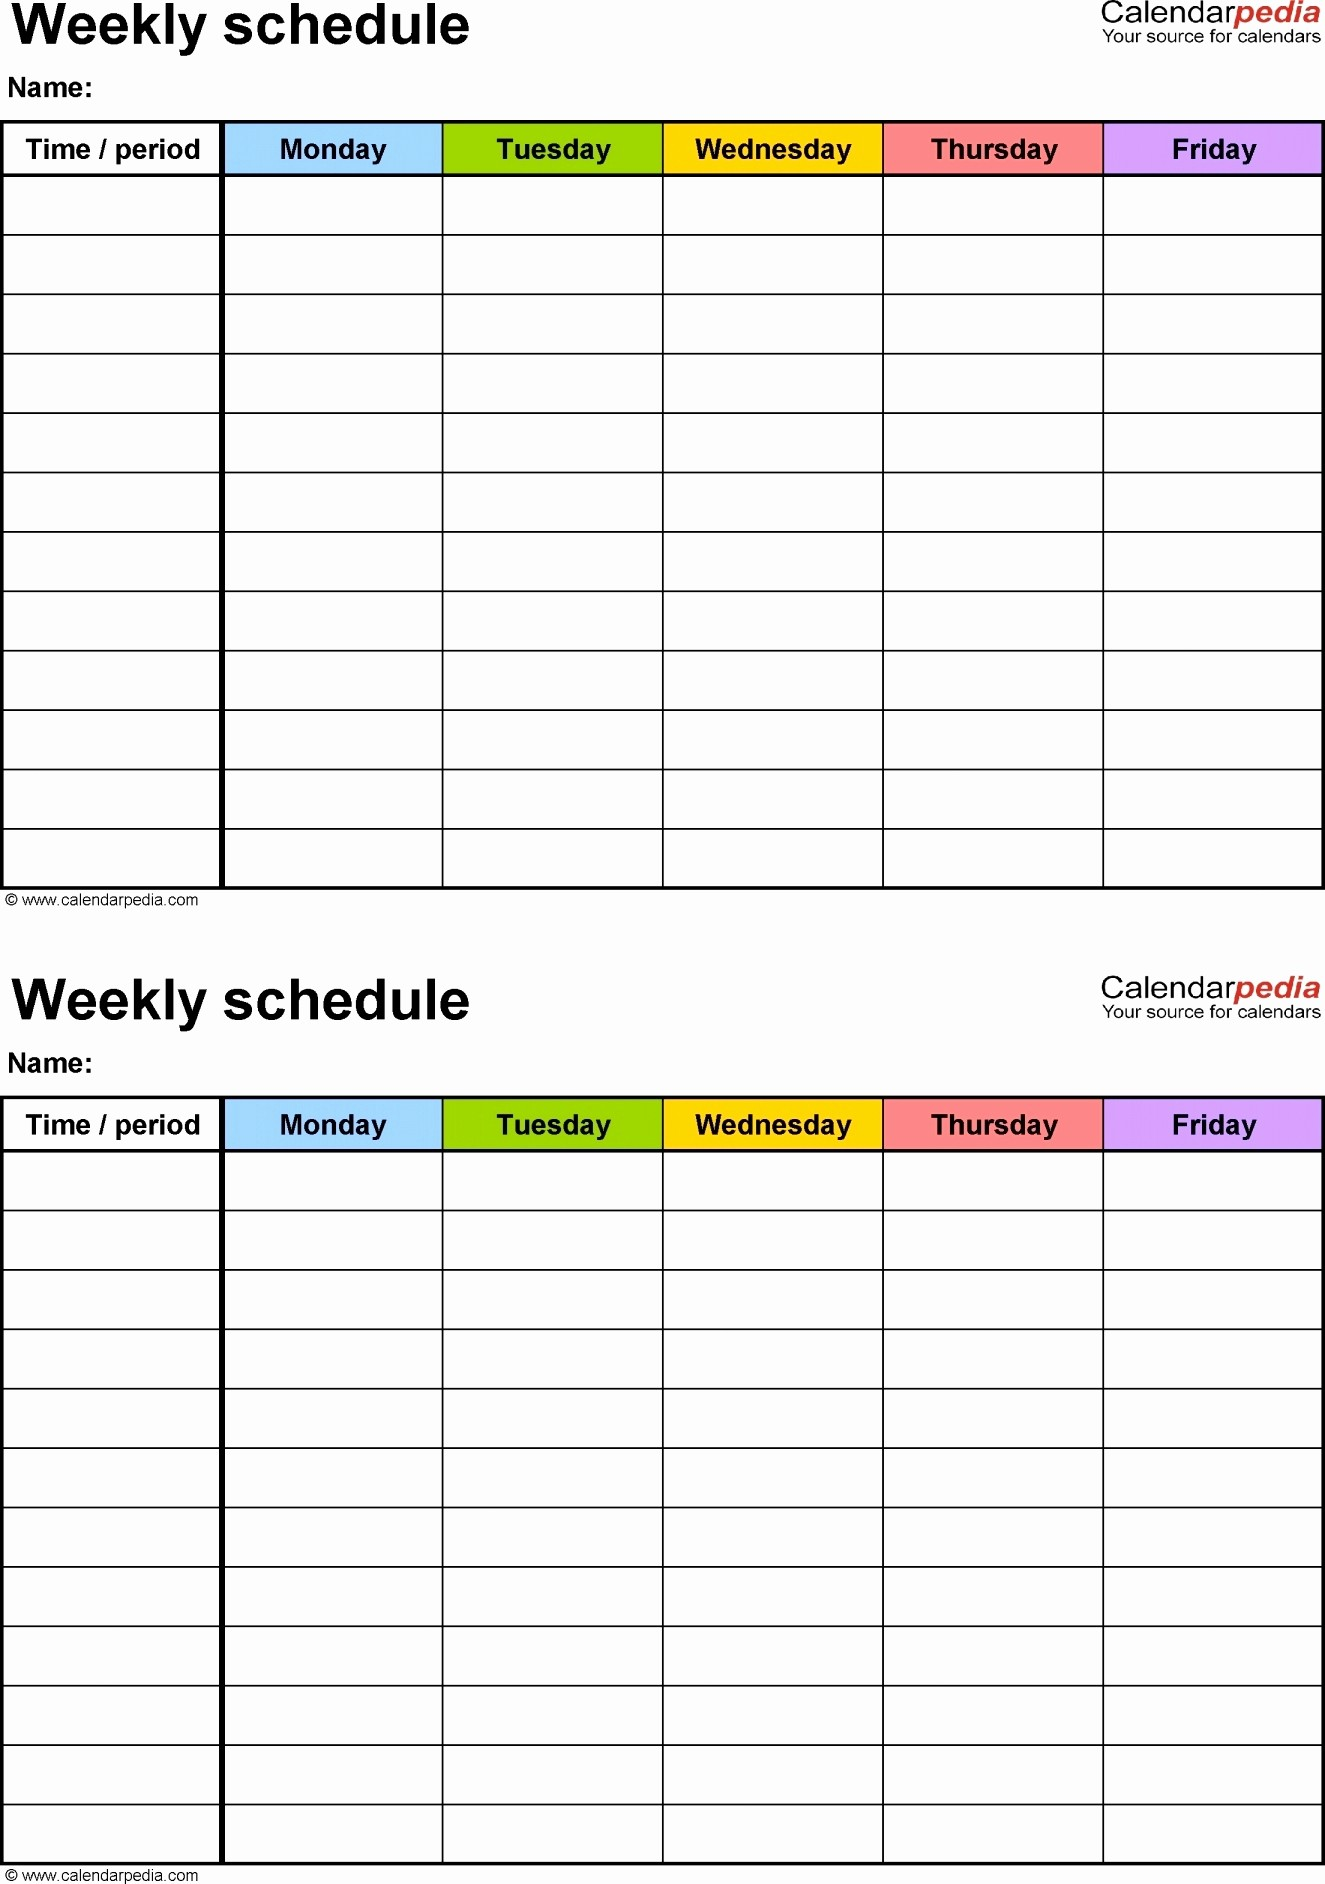 Day to Day Schedule Template Fresh Weekly Schedule Template Google Docs